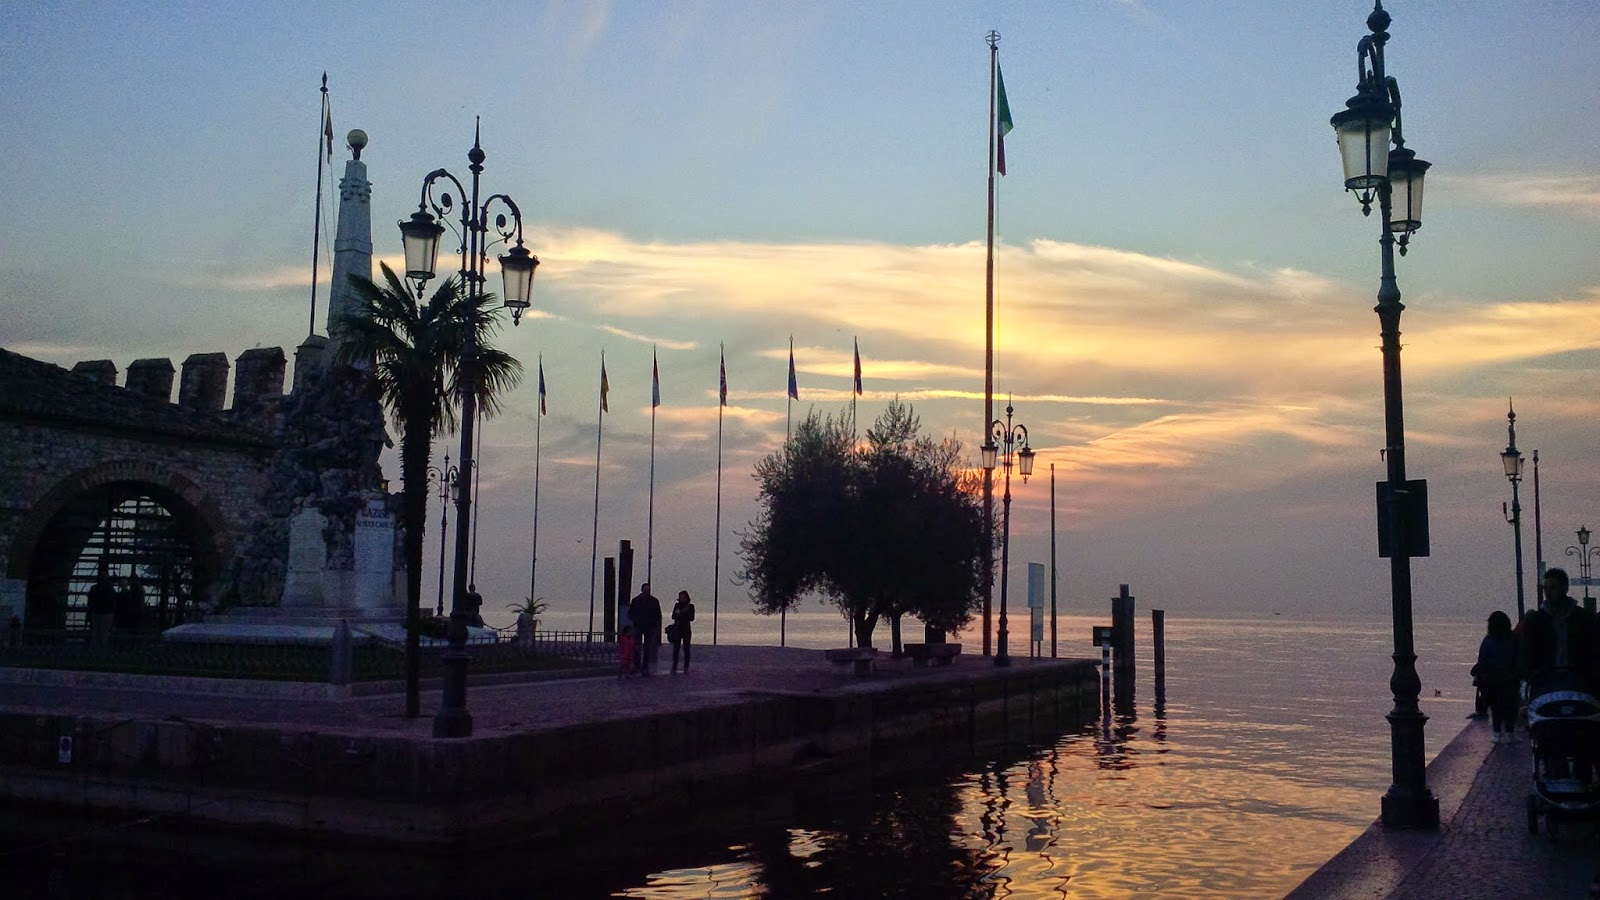 Sunset over Lazise on Lake Garda